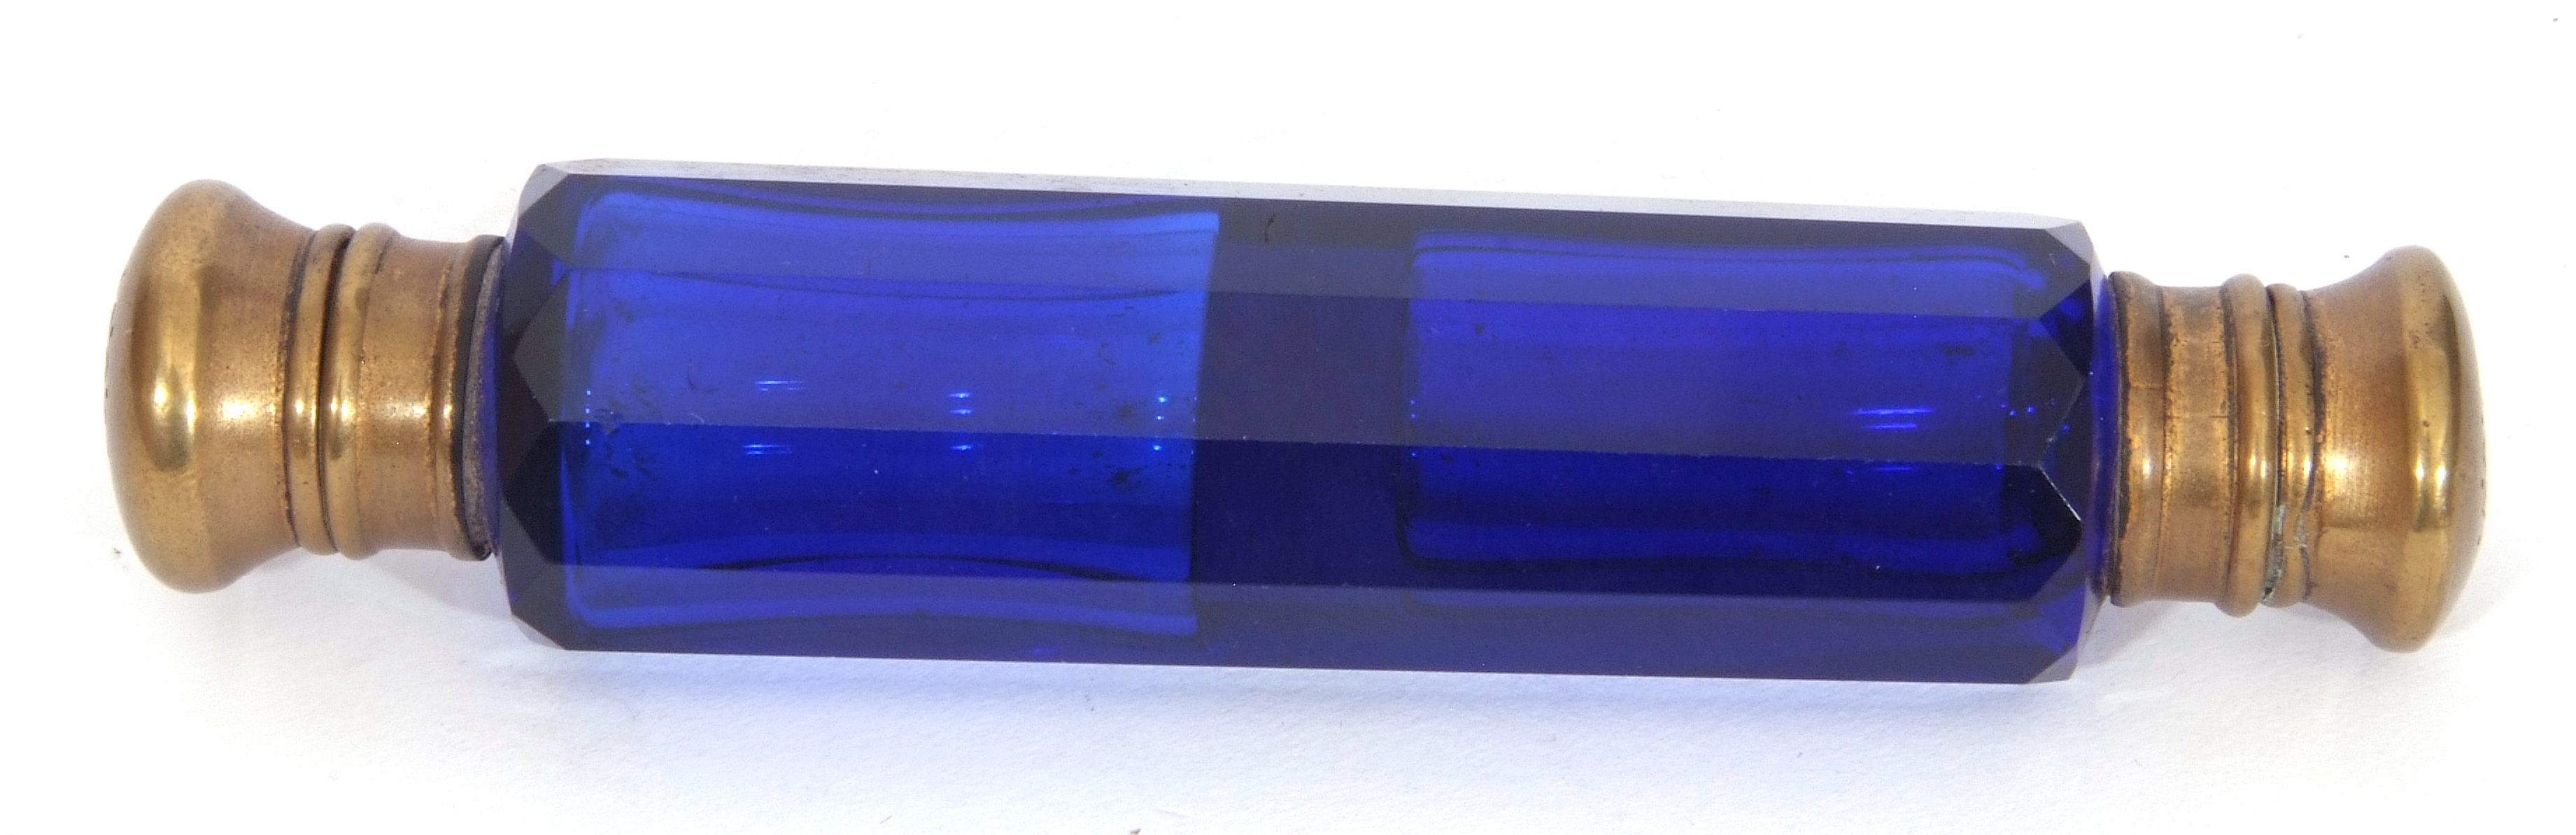 Mixed Lot: antique blue faceted glass double ended scent bottle with gilt metal fittings, 13cm long, - Image 12 of 16